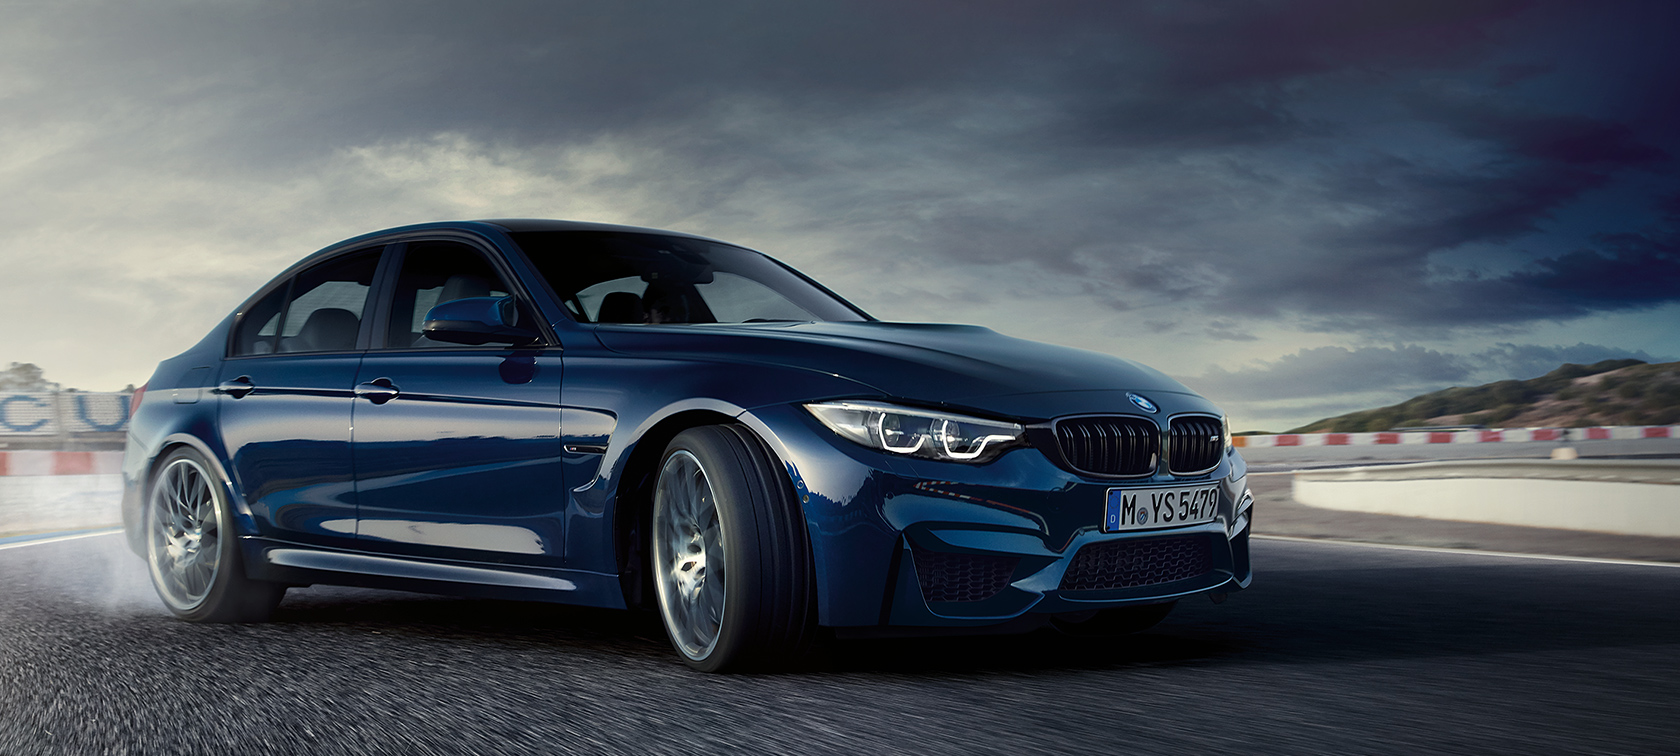 BMW M-Series M3 Sedan in dark blue: speeding car frontside view